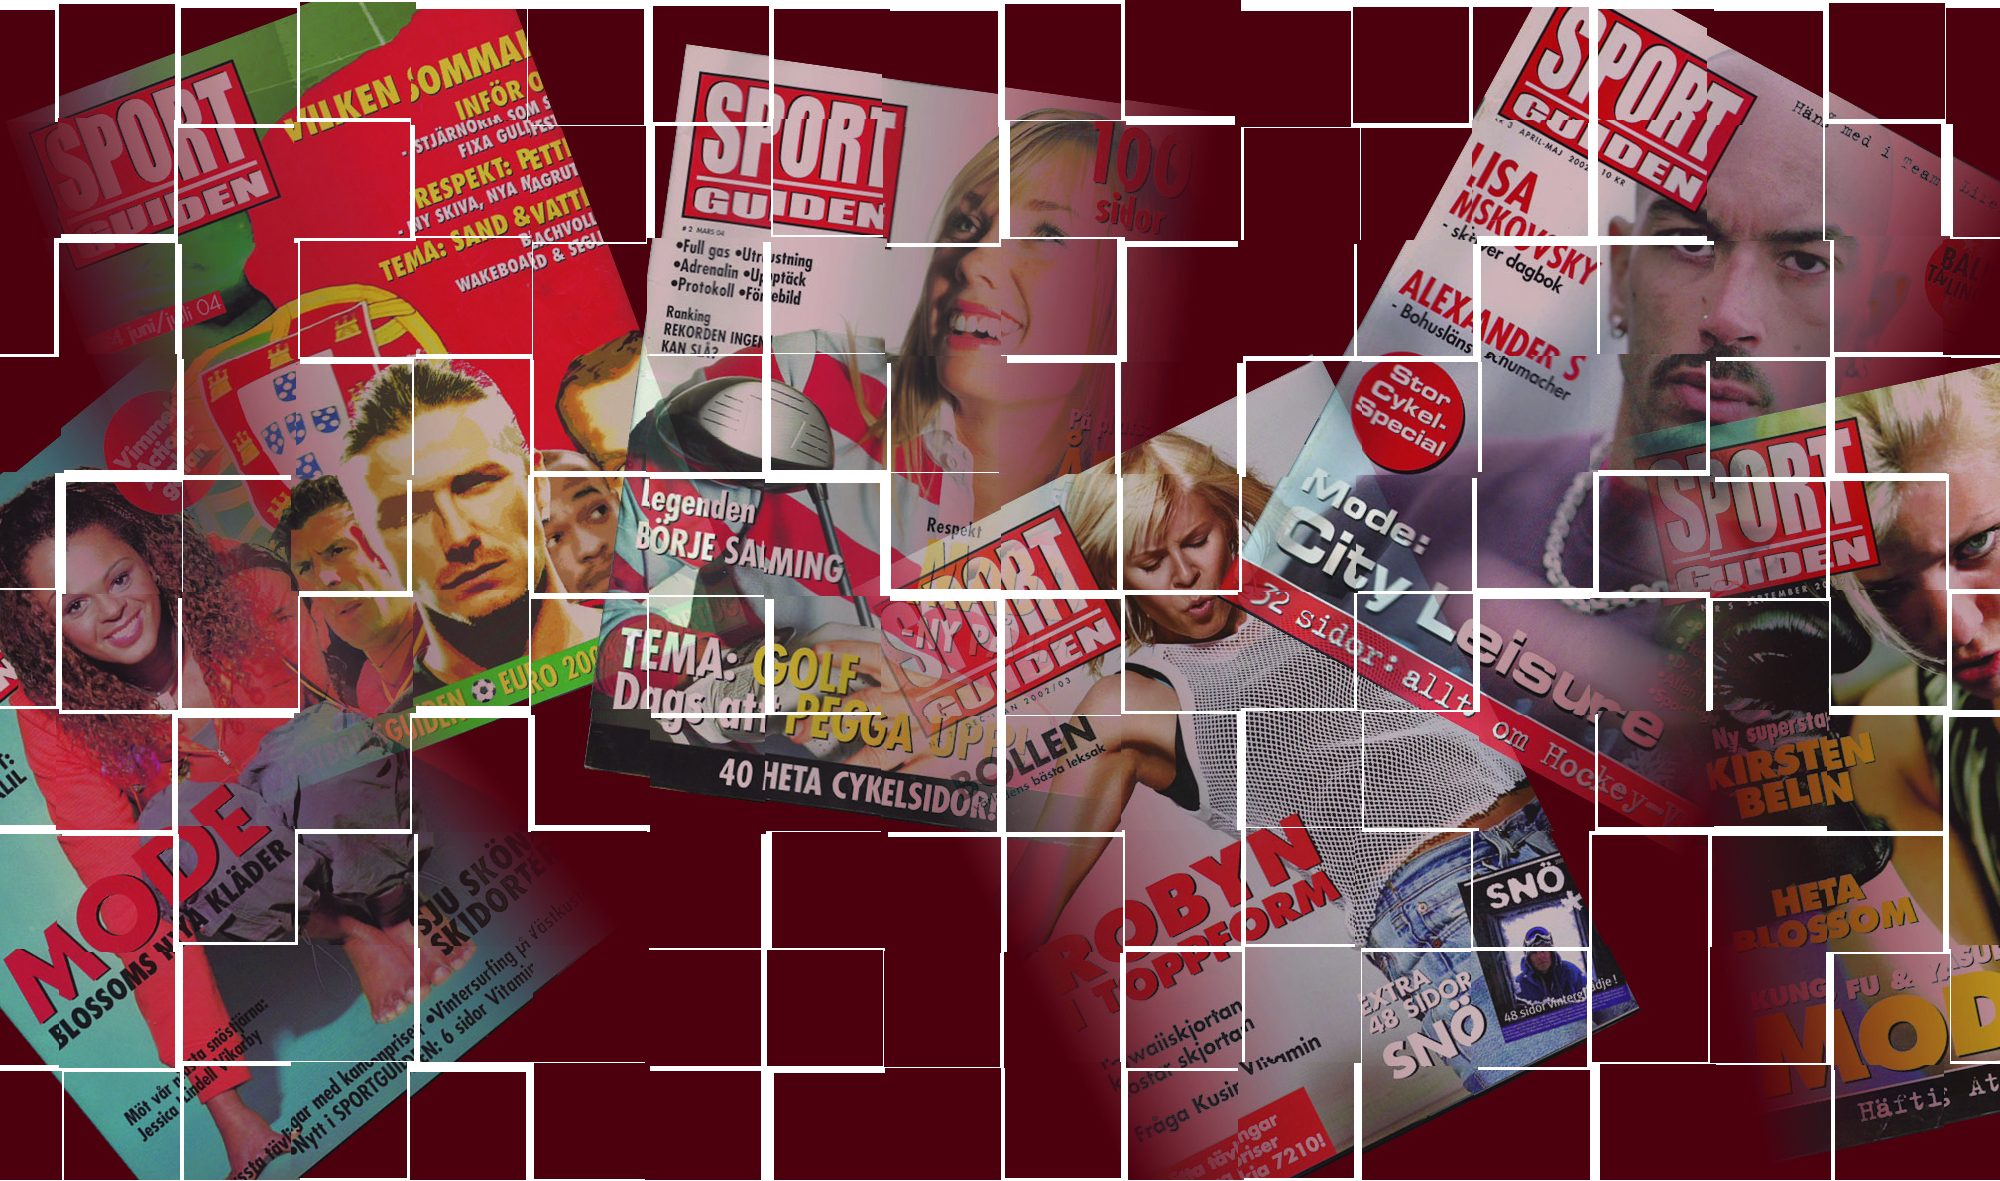 Sportguiden Magazine Covers collage